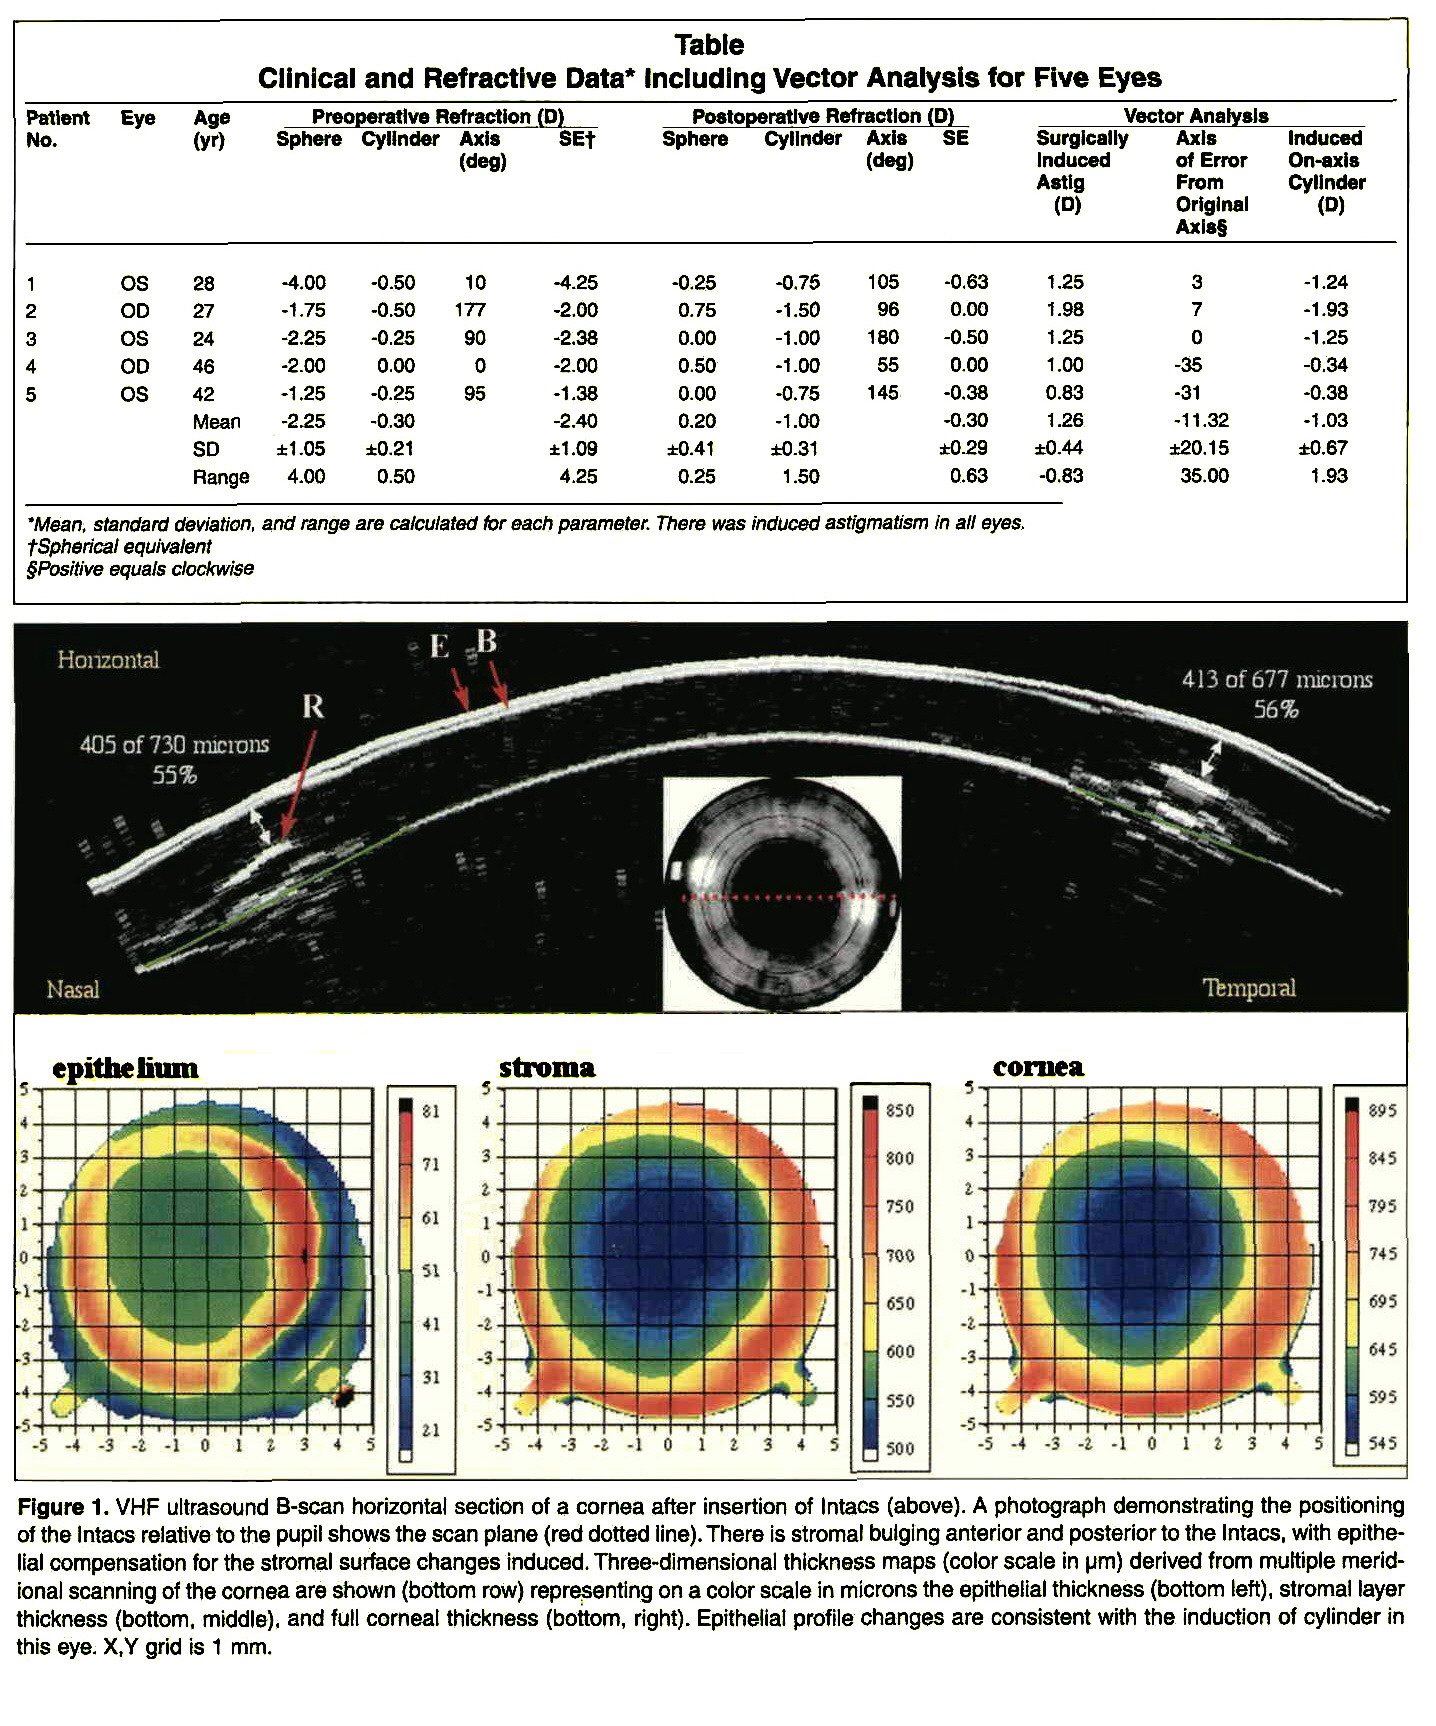 Epithelial And Stromal Changes Induced By Intacs Examined By Three Dimensional Very High